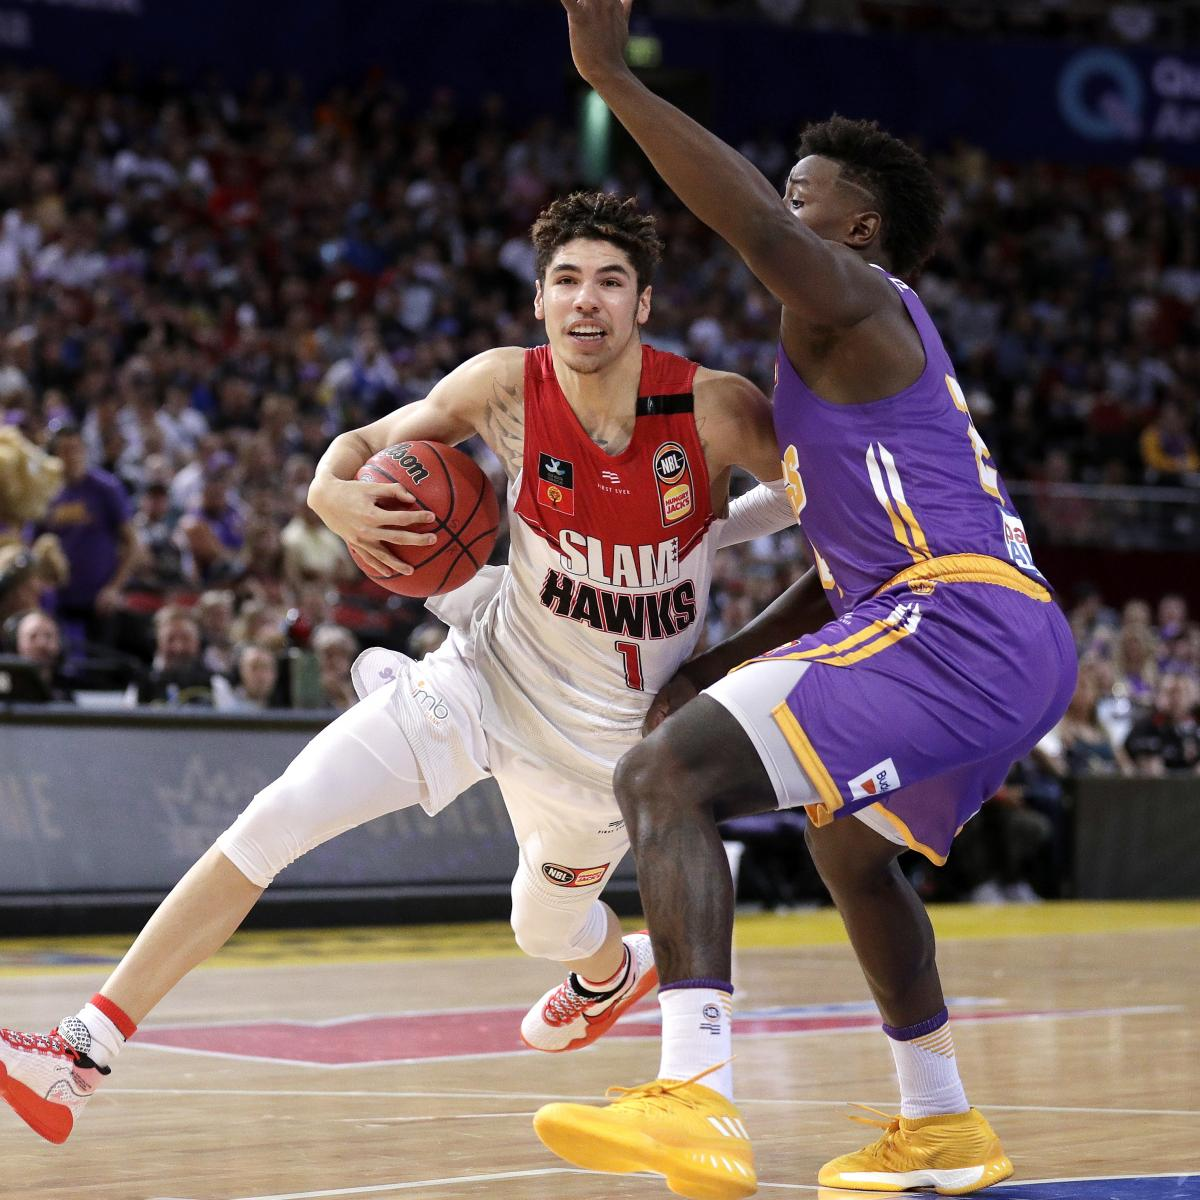 NBA Draft 2020: Latest Mock Draft Picks After Official Lottery Results